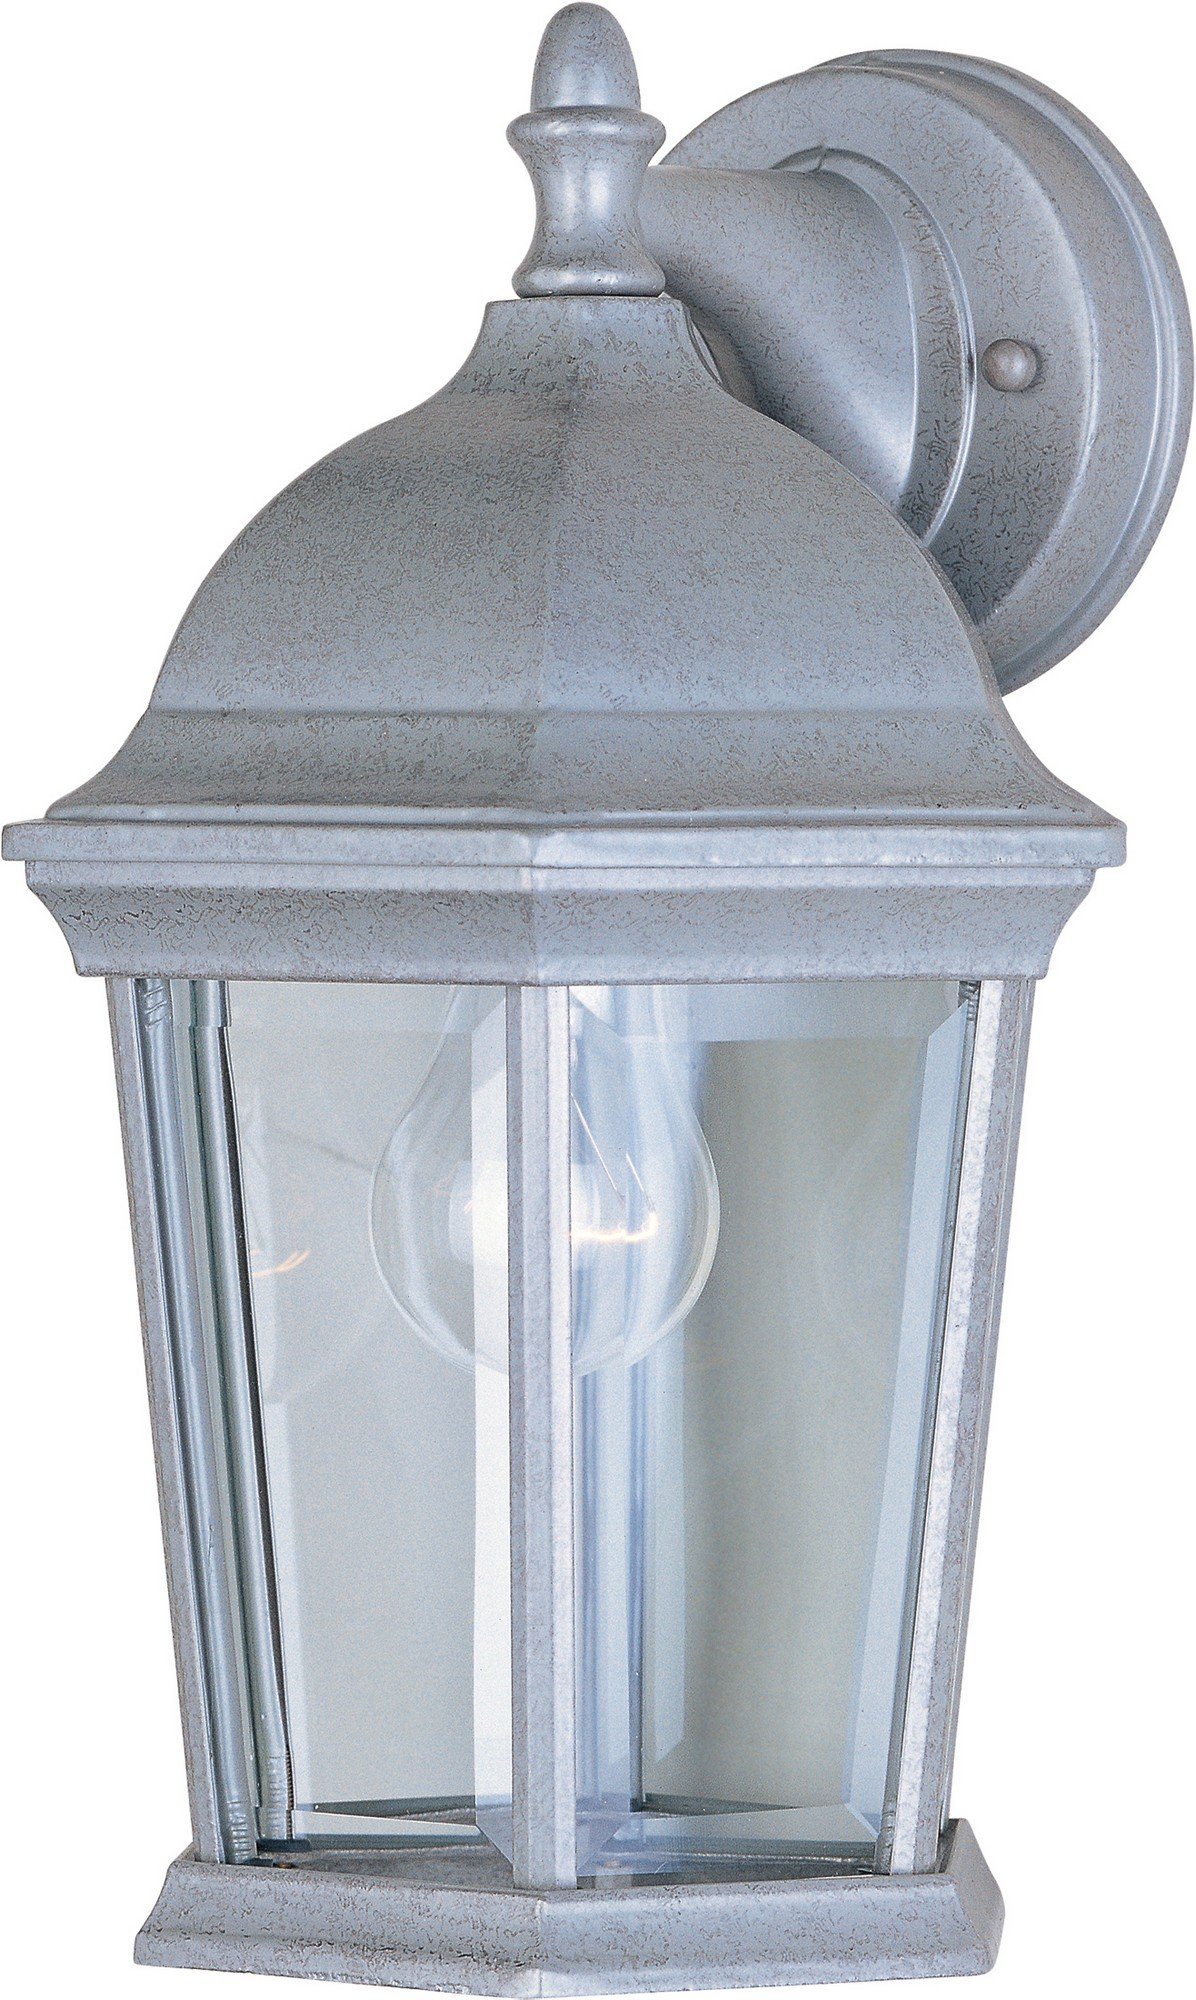 Maxim 1024PE Builder Cast 1-Light Outdoor Wall Lantern, Pewter Finish, Clear Glass, MB Incandescent Incandescent Bulb , 40W Max., Dry Safety Rating, 2900K Color Temp, Standard Dimmable, Glass Shade Material, 9000 Rated Lumens